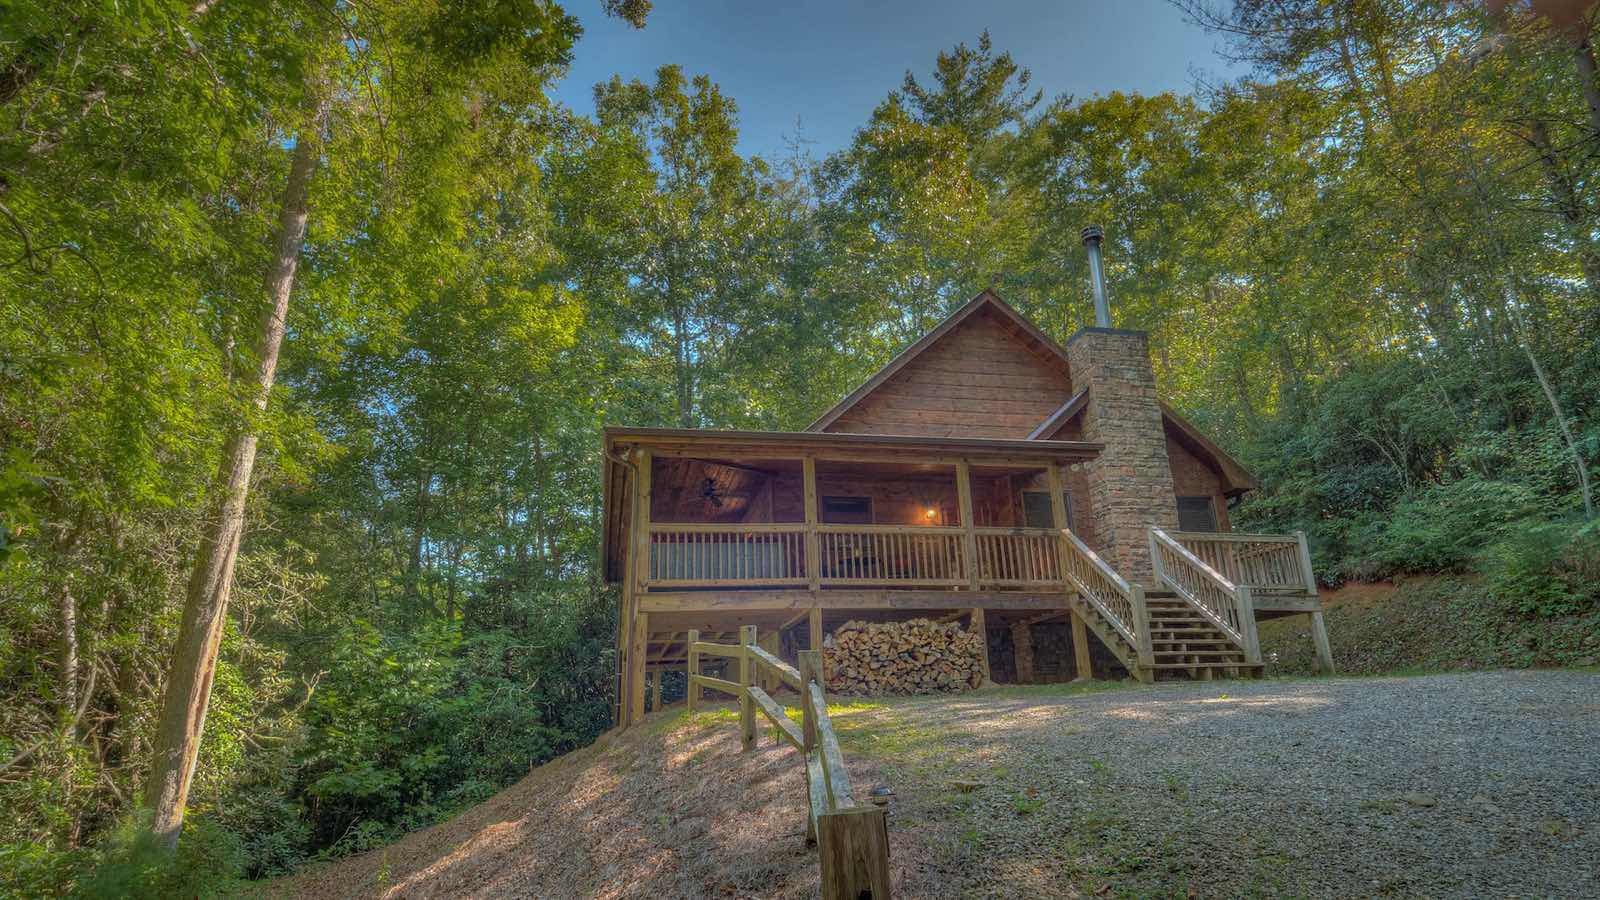 100 Vacation Cabin Rentals Near Atlanta Ga